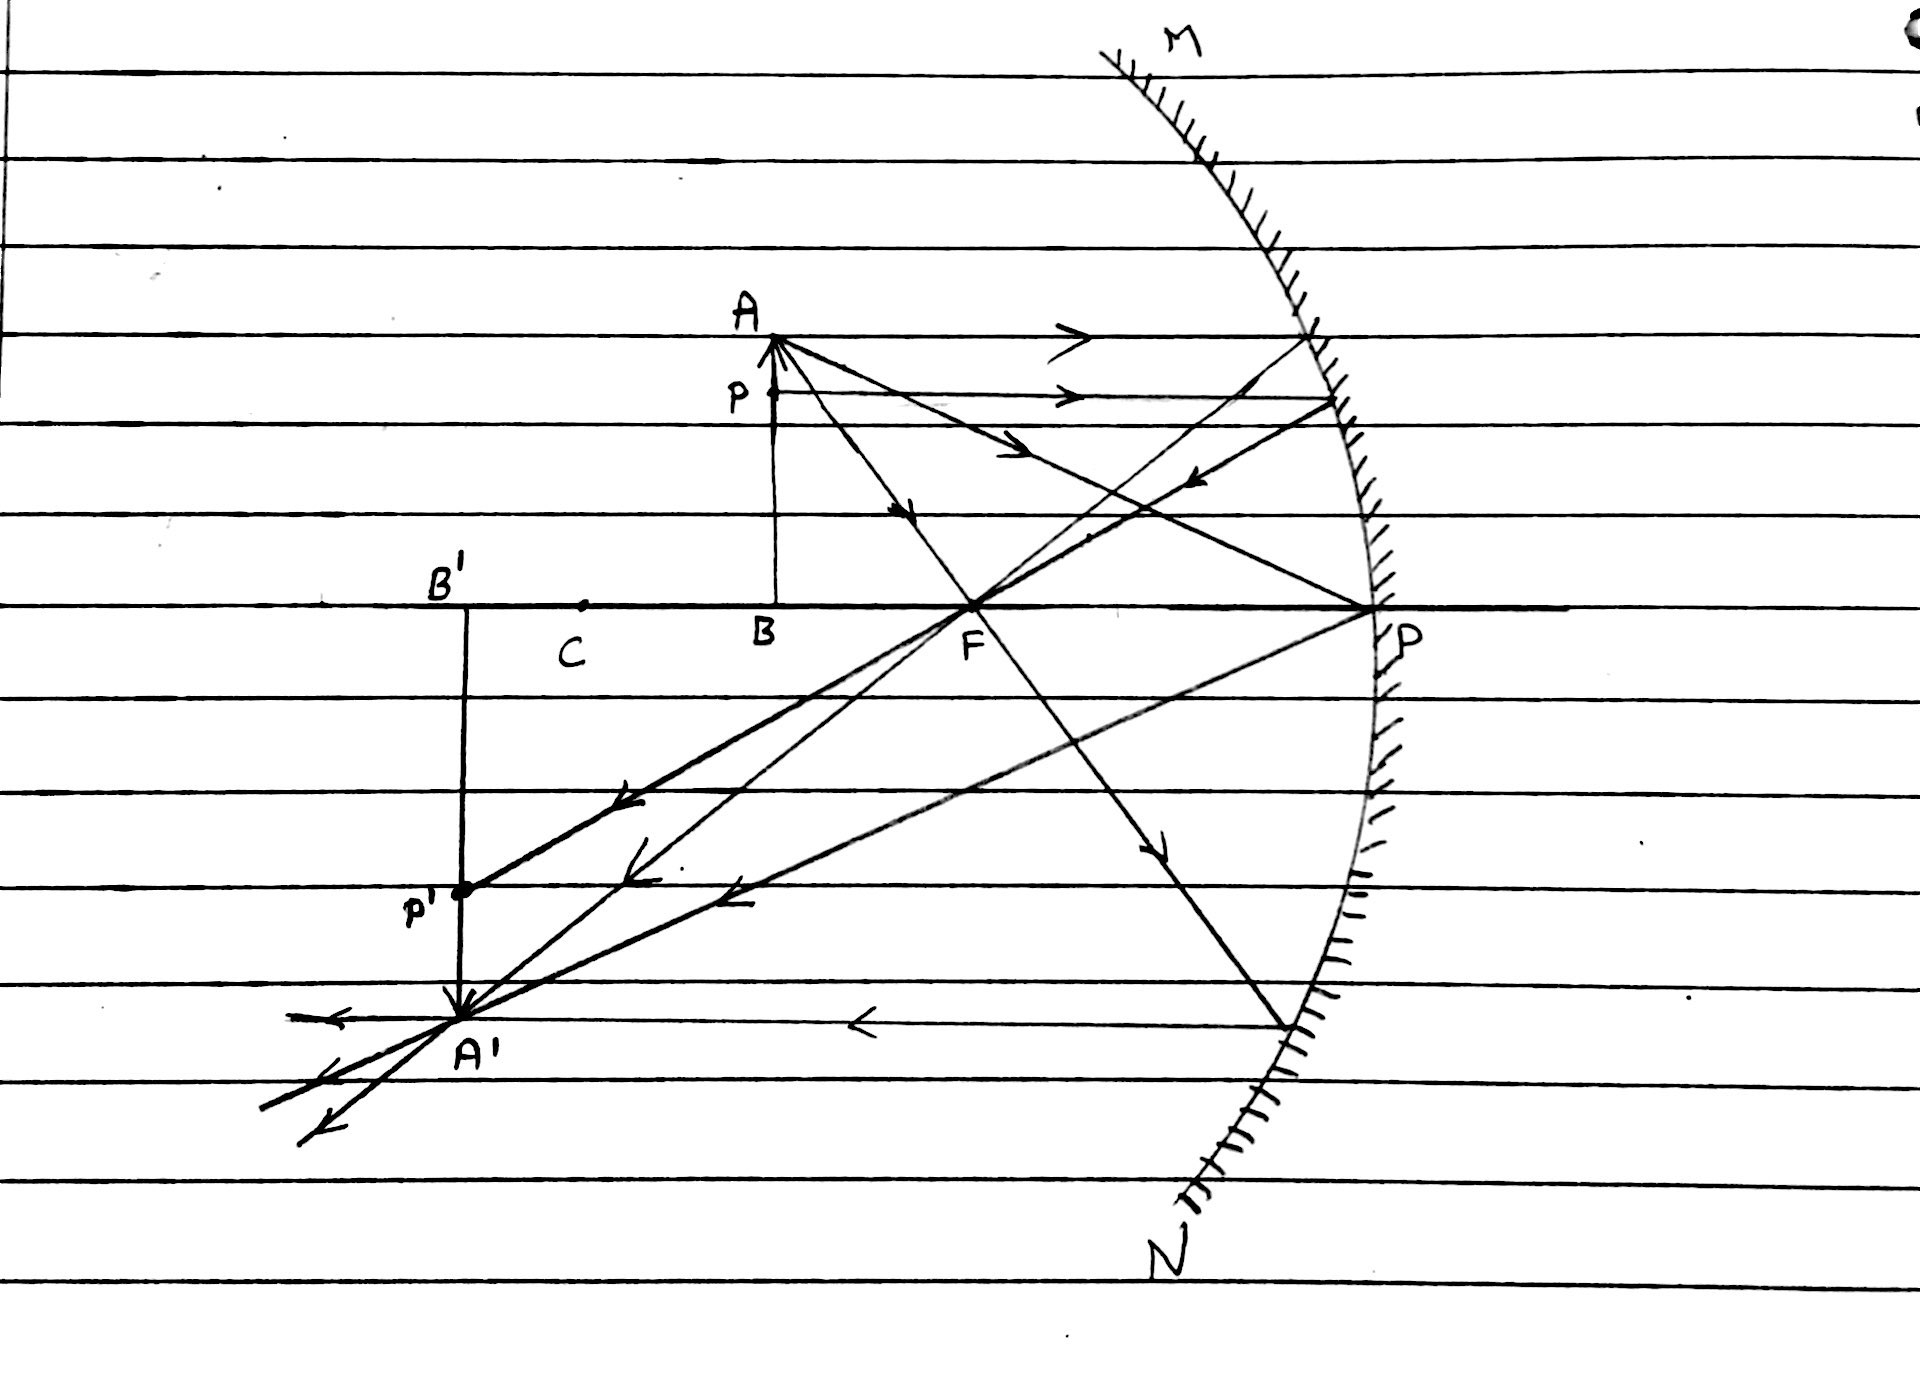 Concave Mirror Diagram Draw The Ray Diagram Of An Object Between C And F In Concave Mirror